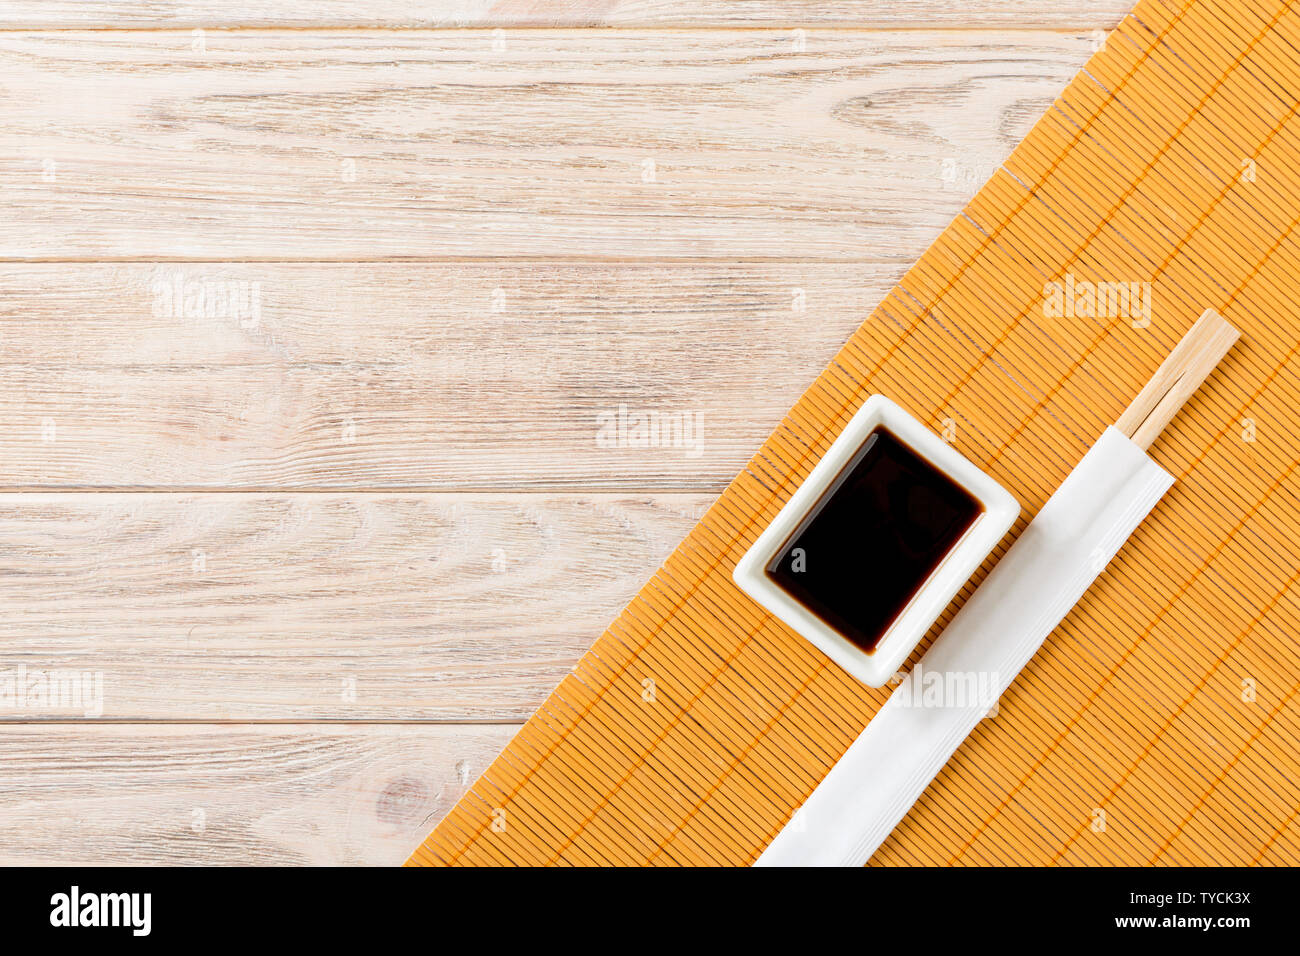 Bamboo Mat And Soy Sauce With Sushi Chopsticks On Wooden